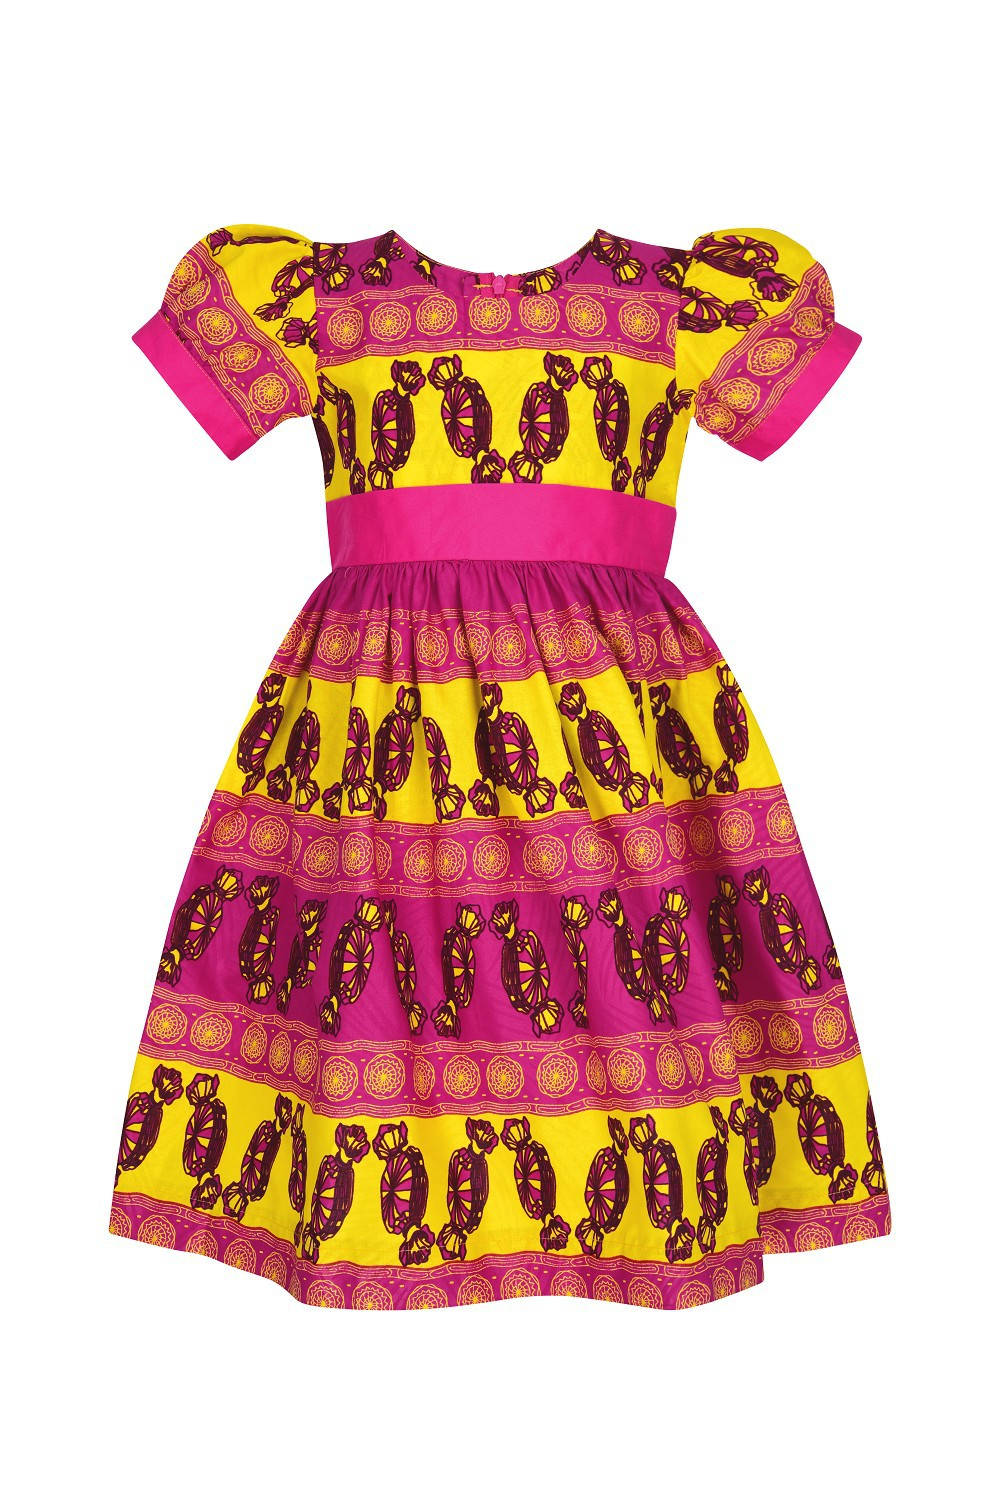 Quilted fabric lined in laminated fabric zipper closure. customizable Dress handkerchief Anna for children